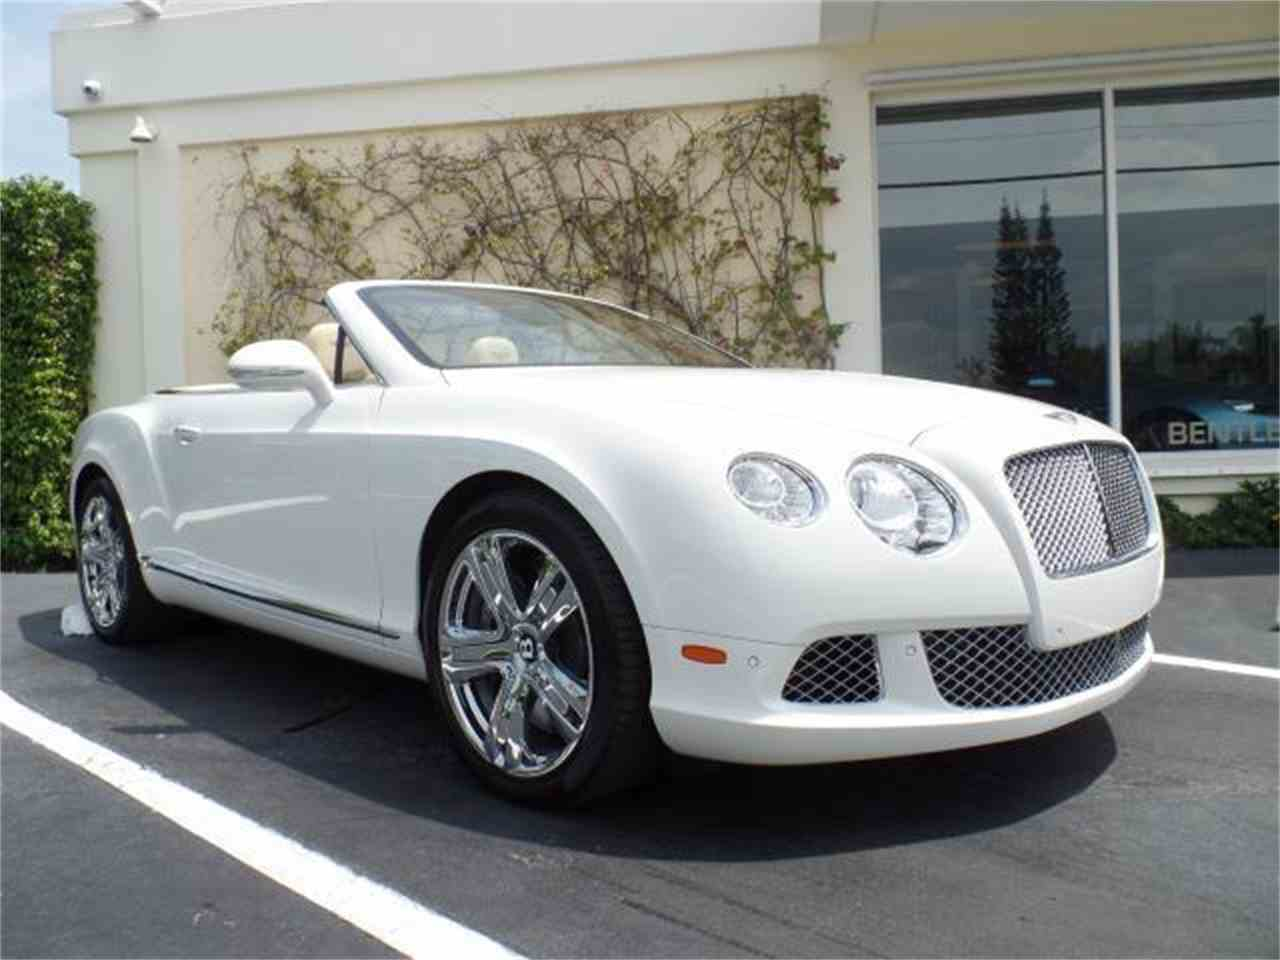 2012 Bentley Continental GTC W12 for Sale | ClassicCars.com | CC-978836